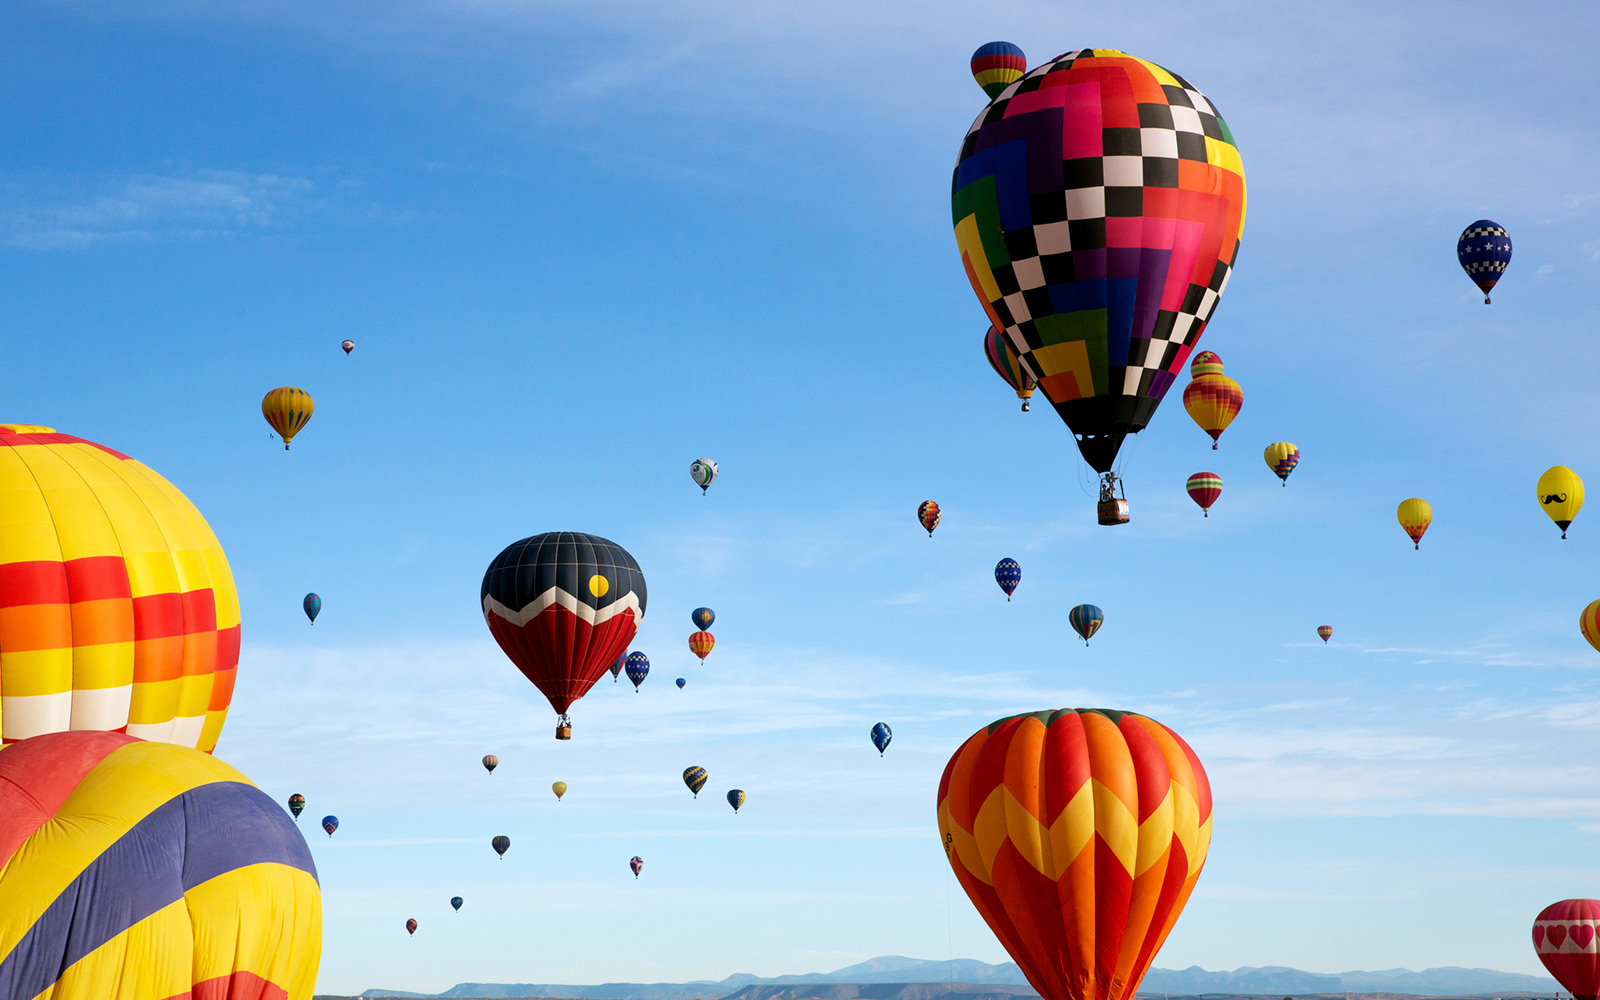 Photos From the World's Biggest Hot Air Balloon Festival Will Make You Want to Book a Trip